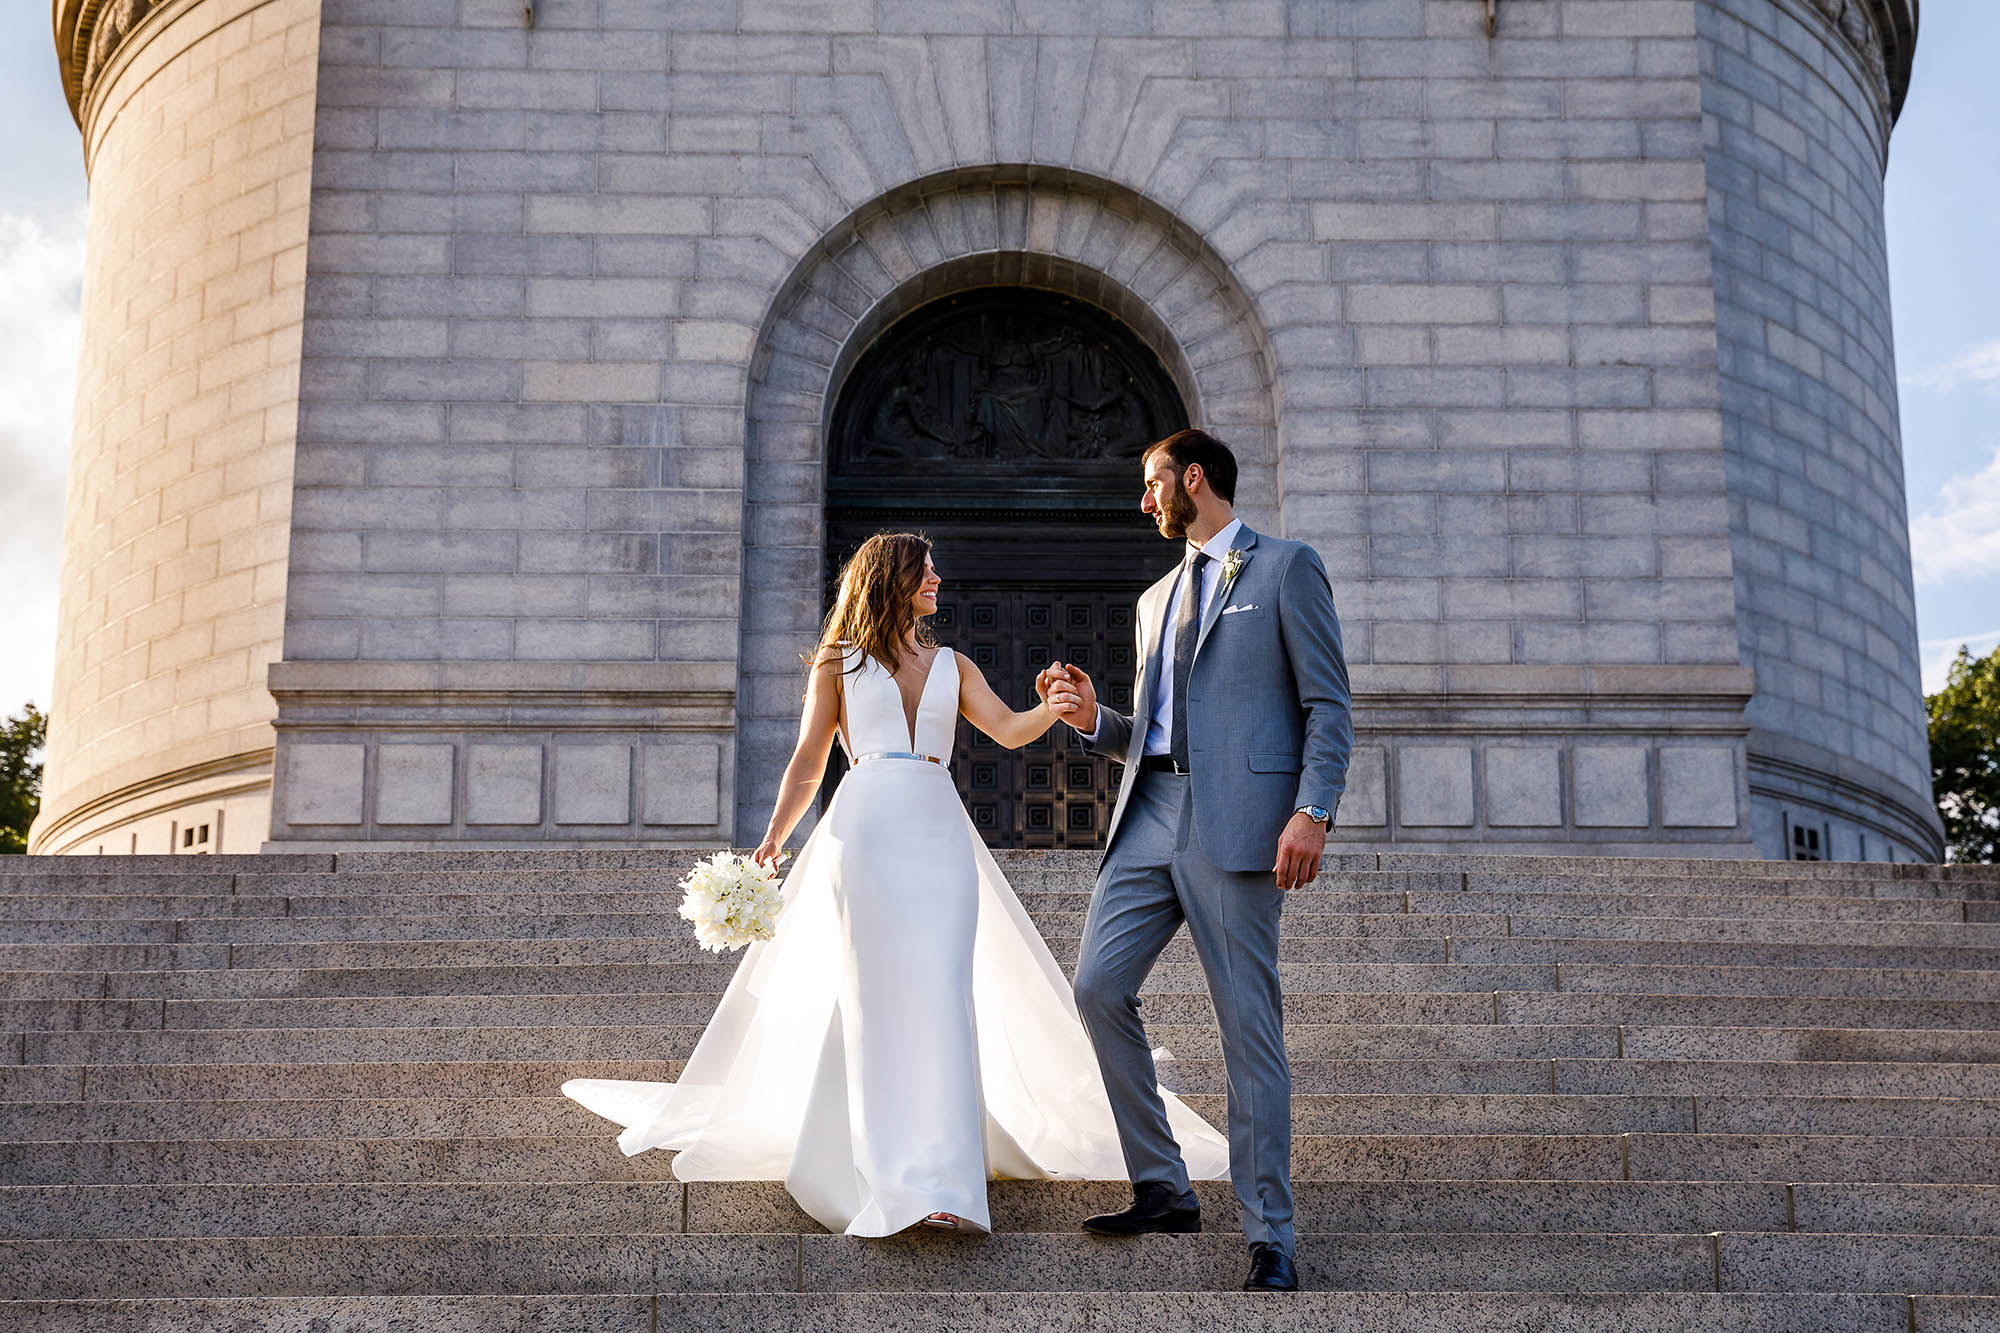 Bride and groom walk hand in hand down the steps of the McKinley Monument in Canton, Ohio on a beautiful, sunny day.